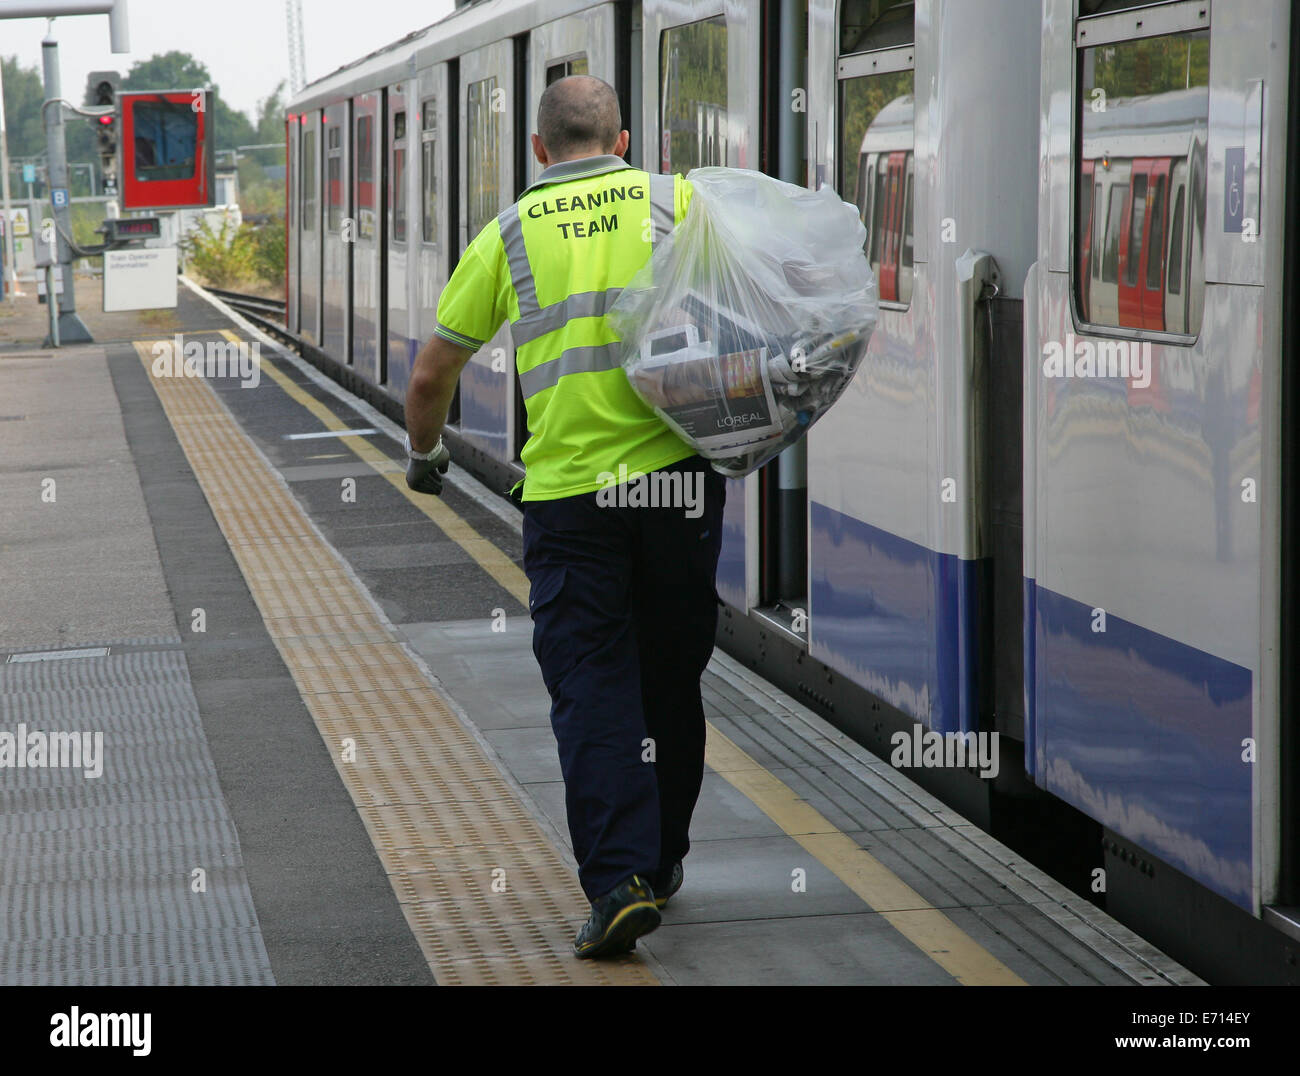 London, UK. 3rd Sep, 2014. London Underground Cleaners are balloted on industrial action due to the introduction - Stock Image